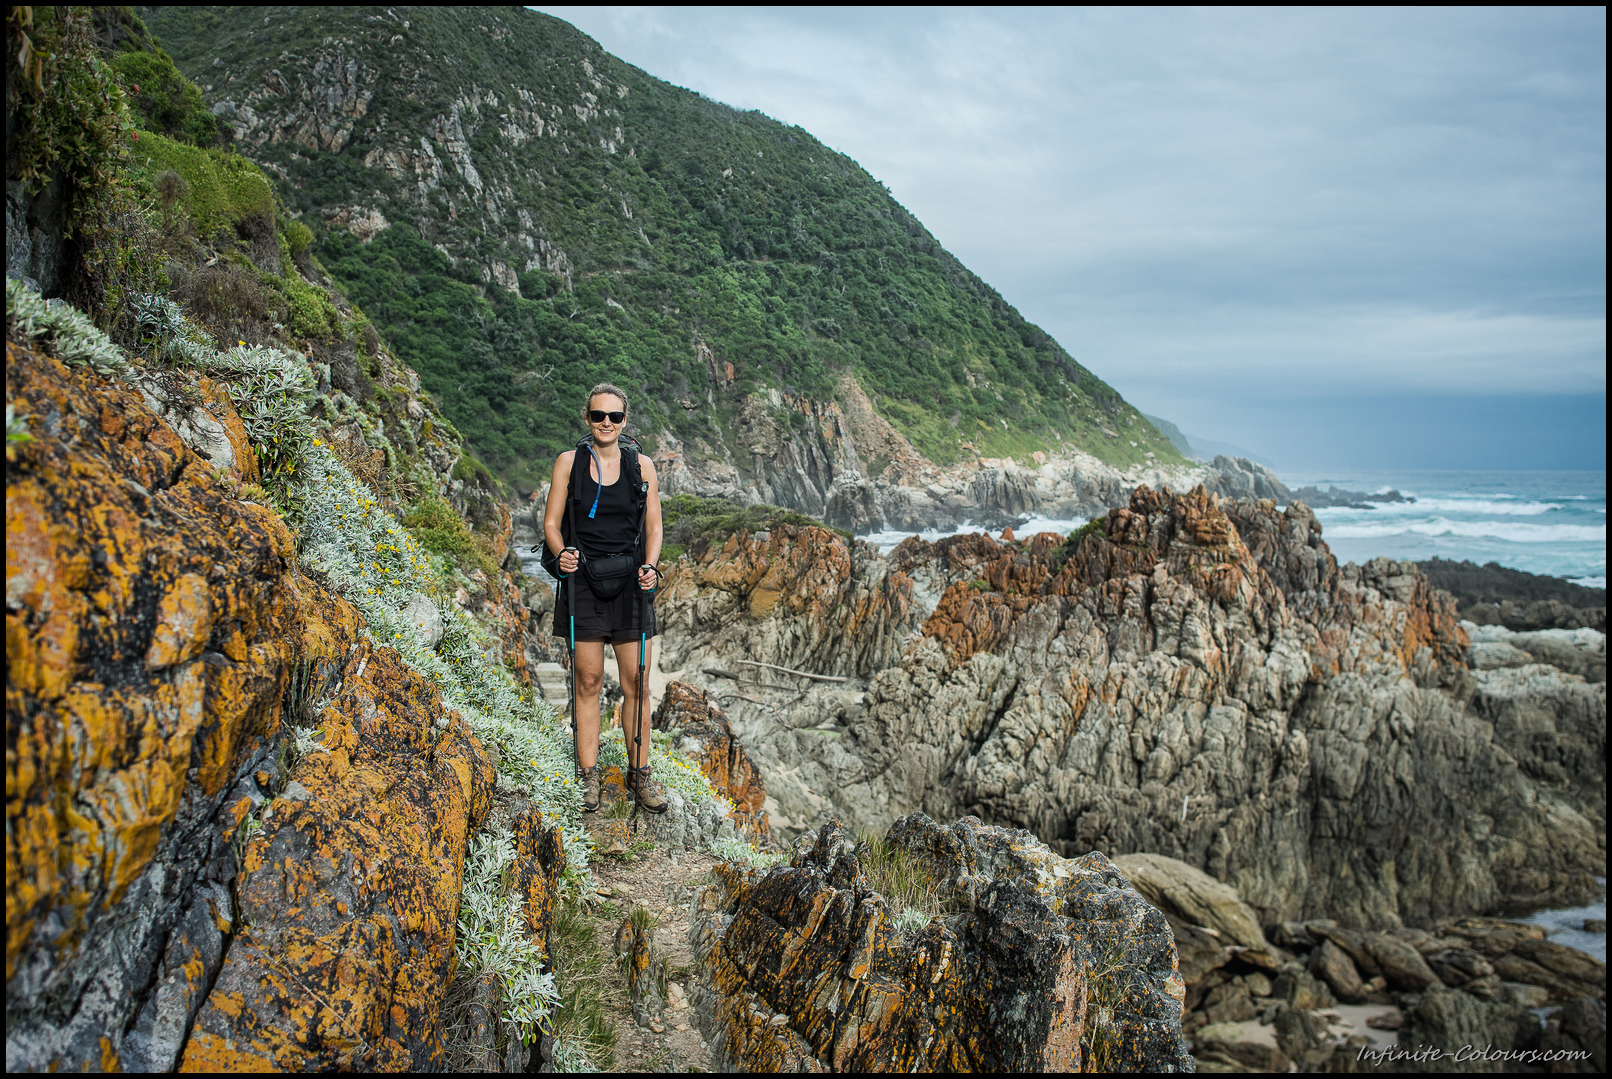 Being happy on a rough trail after having crossed a rough Bloukrans